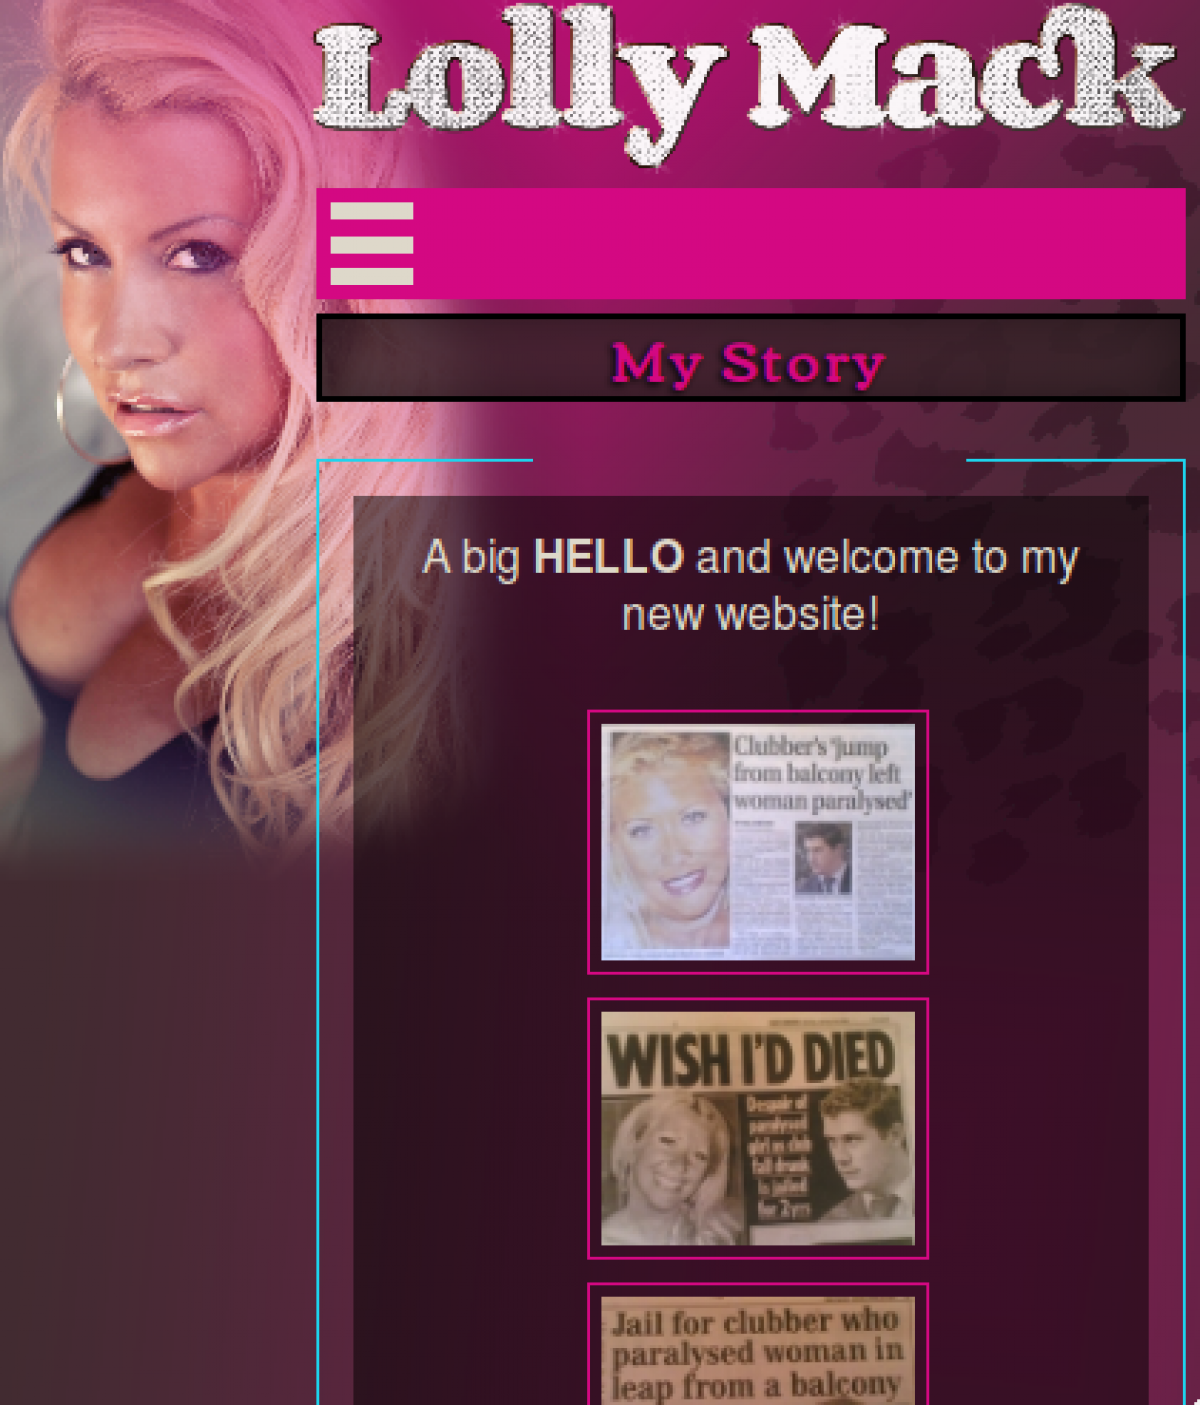 Lolly Mack home page on mobile